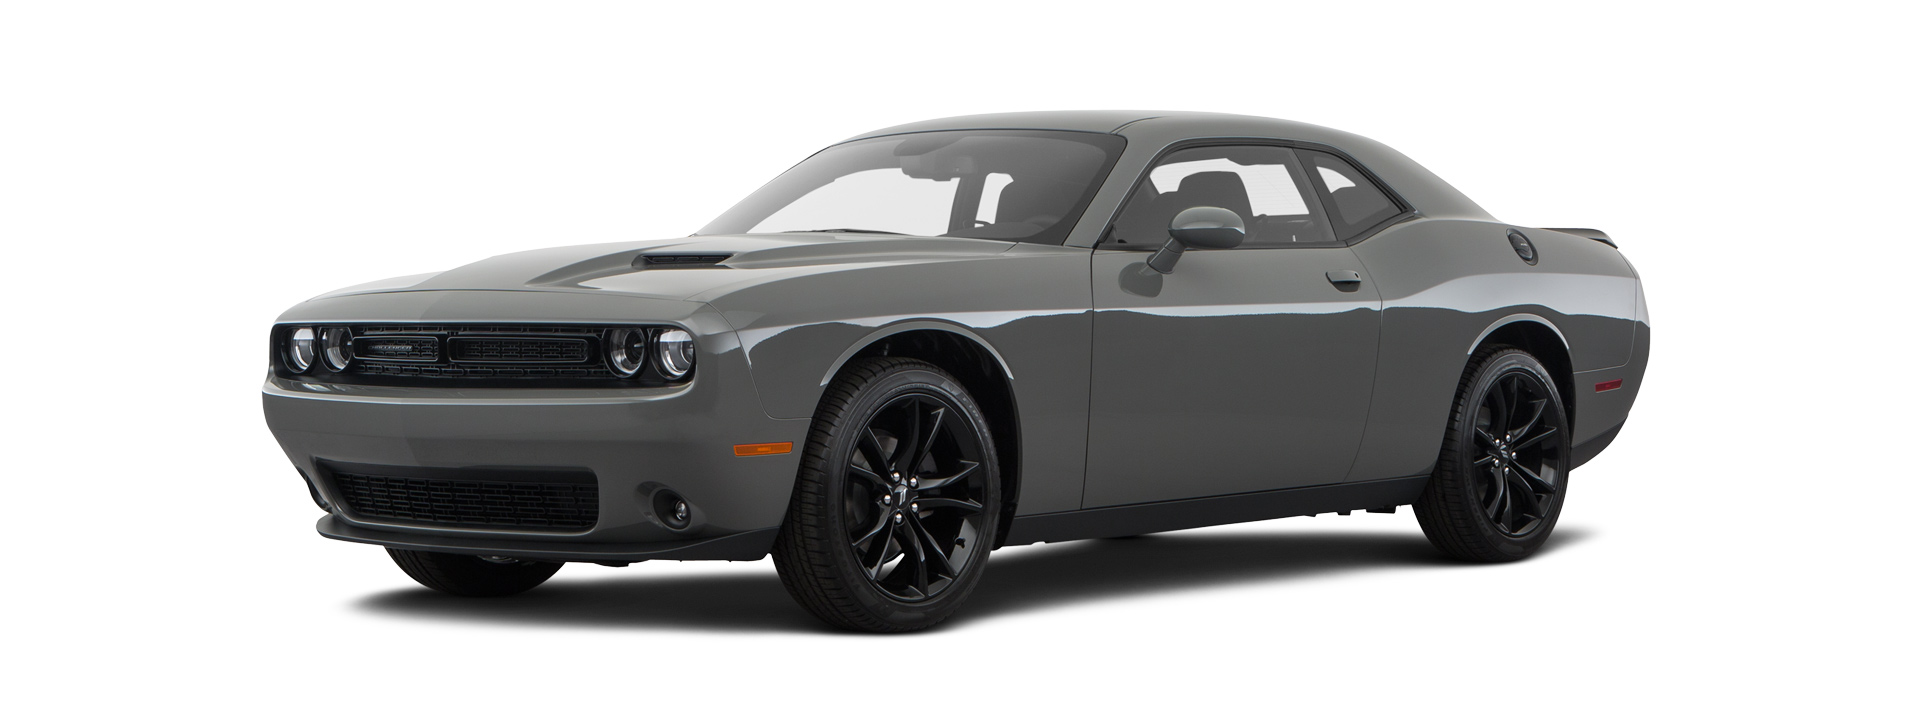 2018 Dodge Challenger for sale in Warrenton, VA